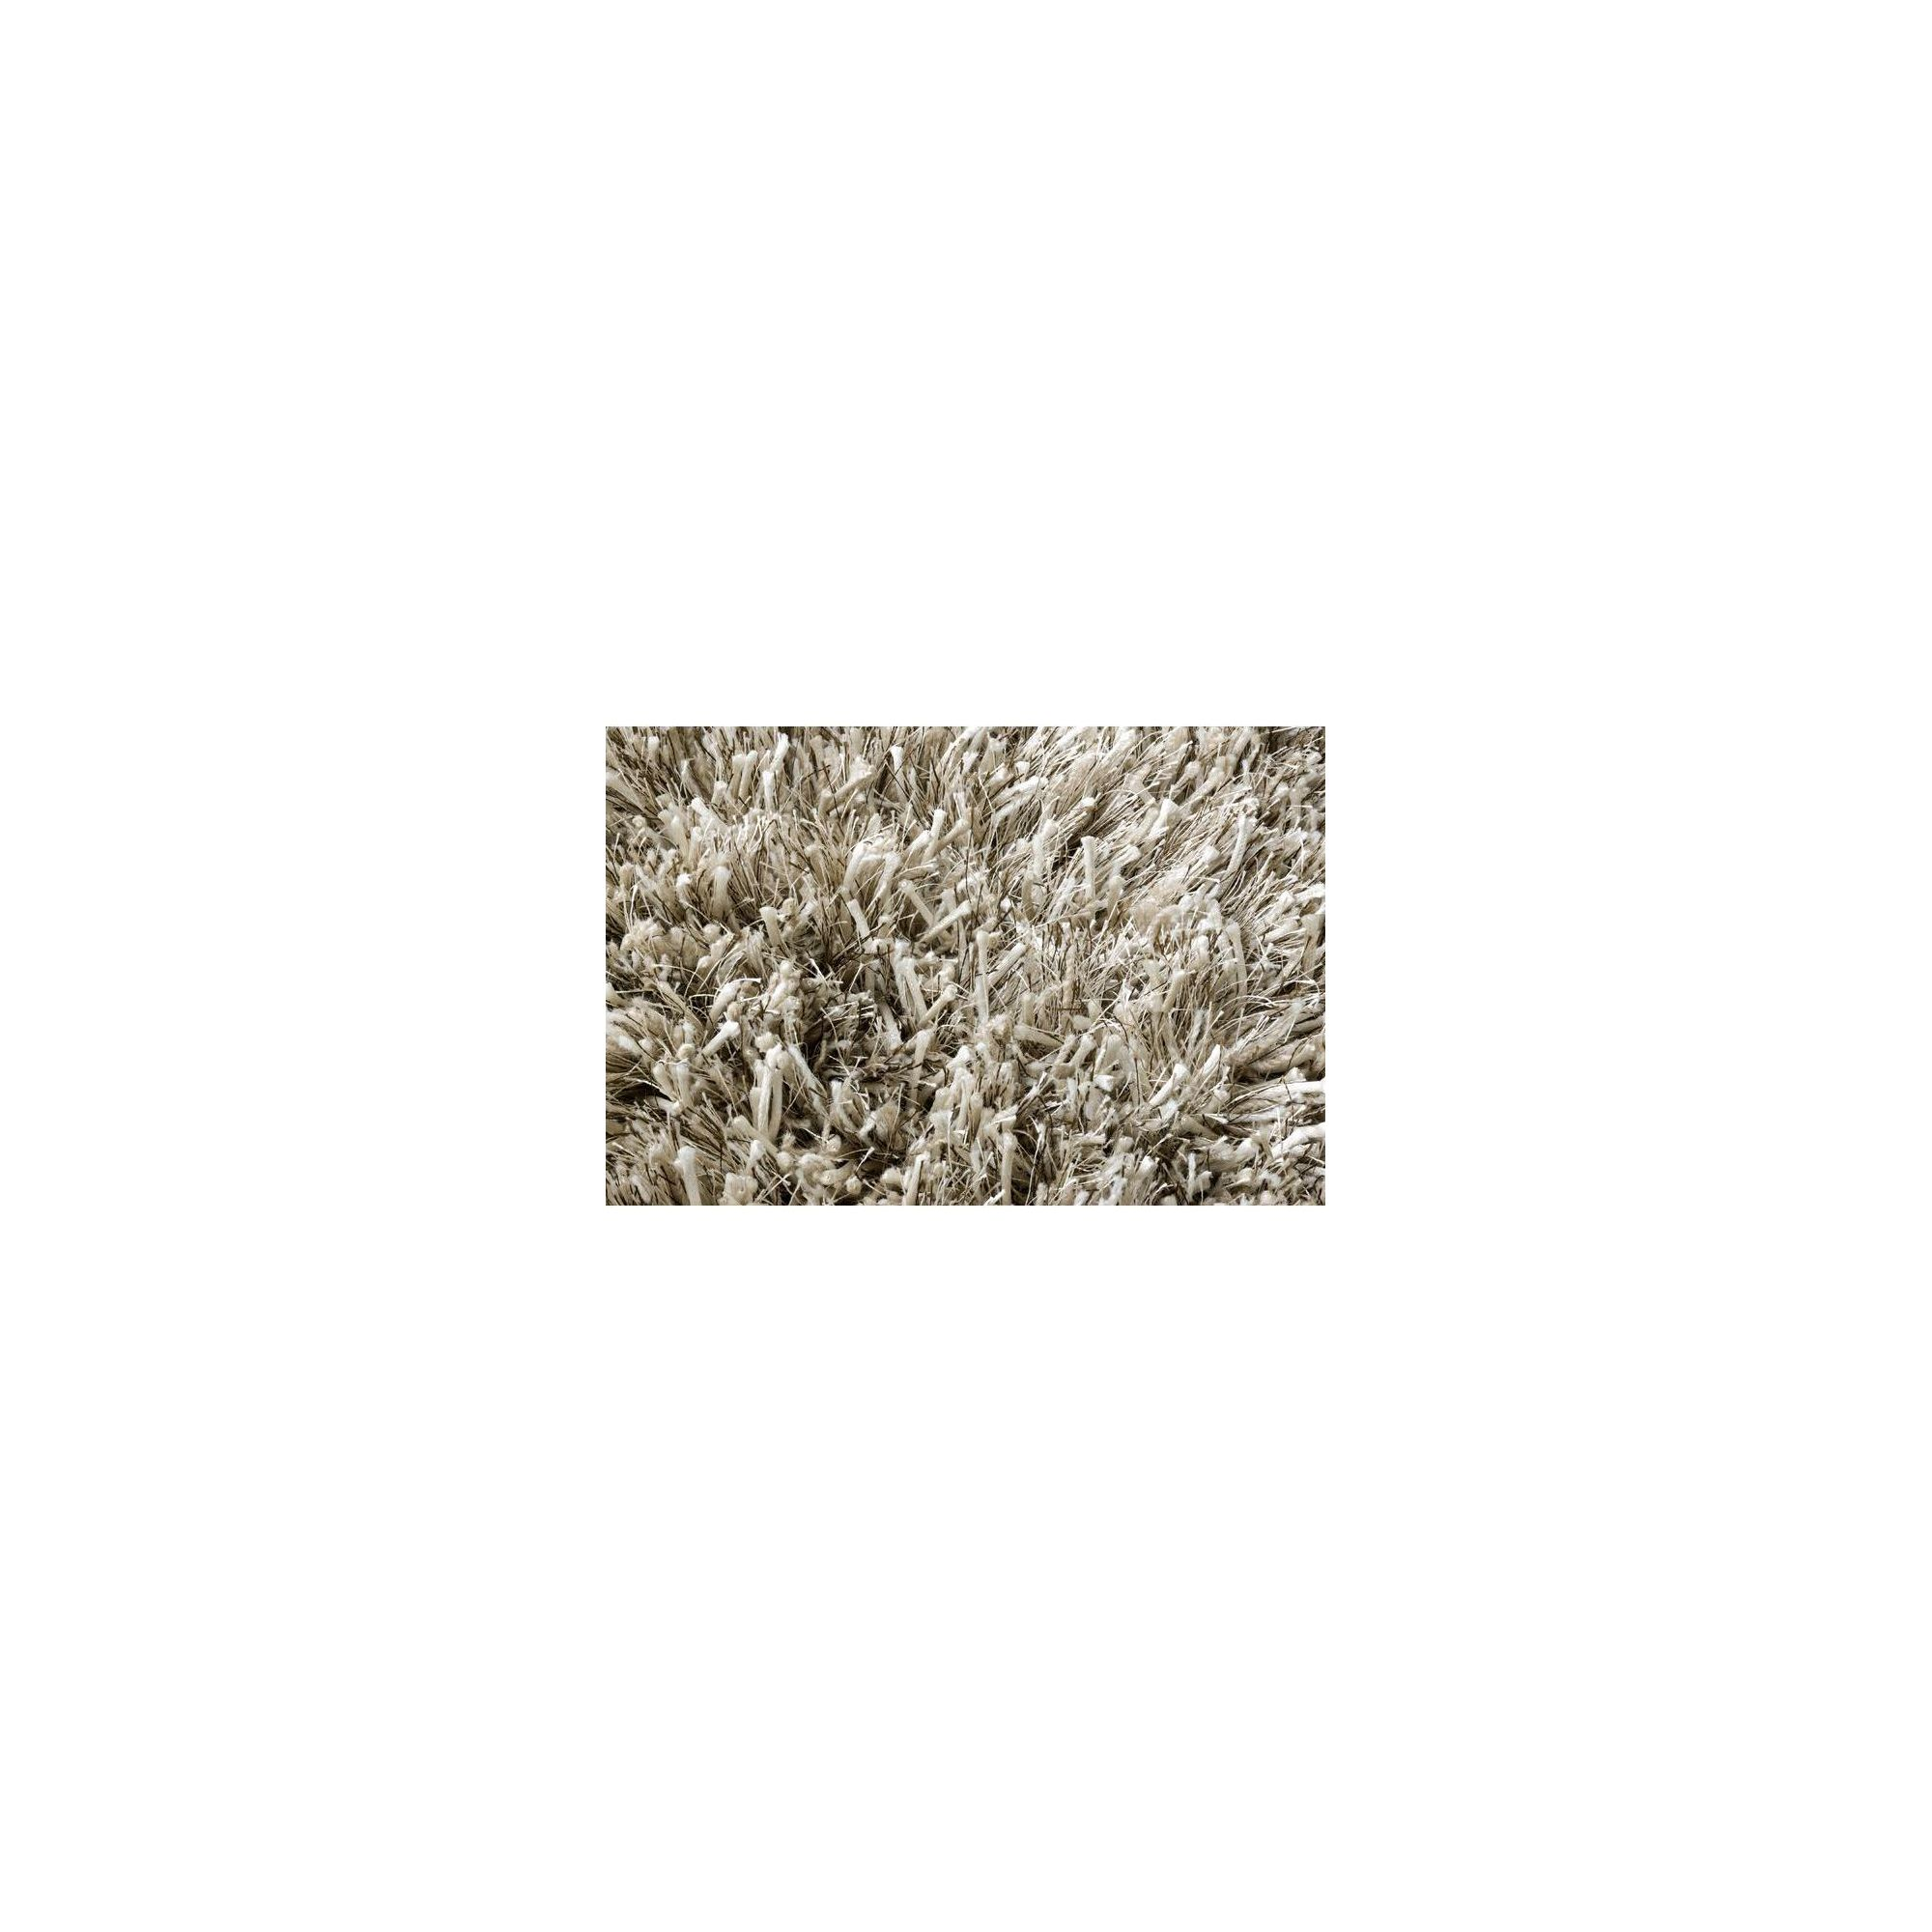 Linie Design Ronado Sand Shag Rug - 240cm x 170cm at Tesco Direct